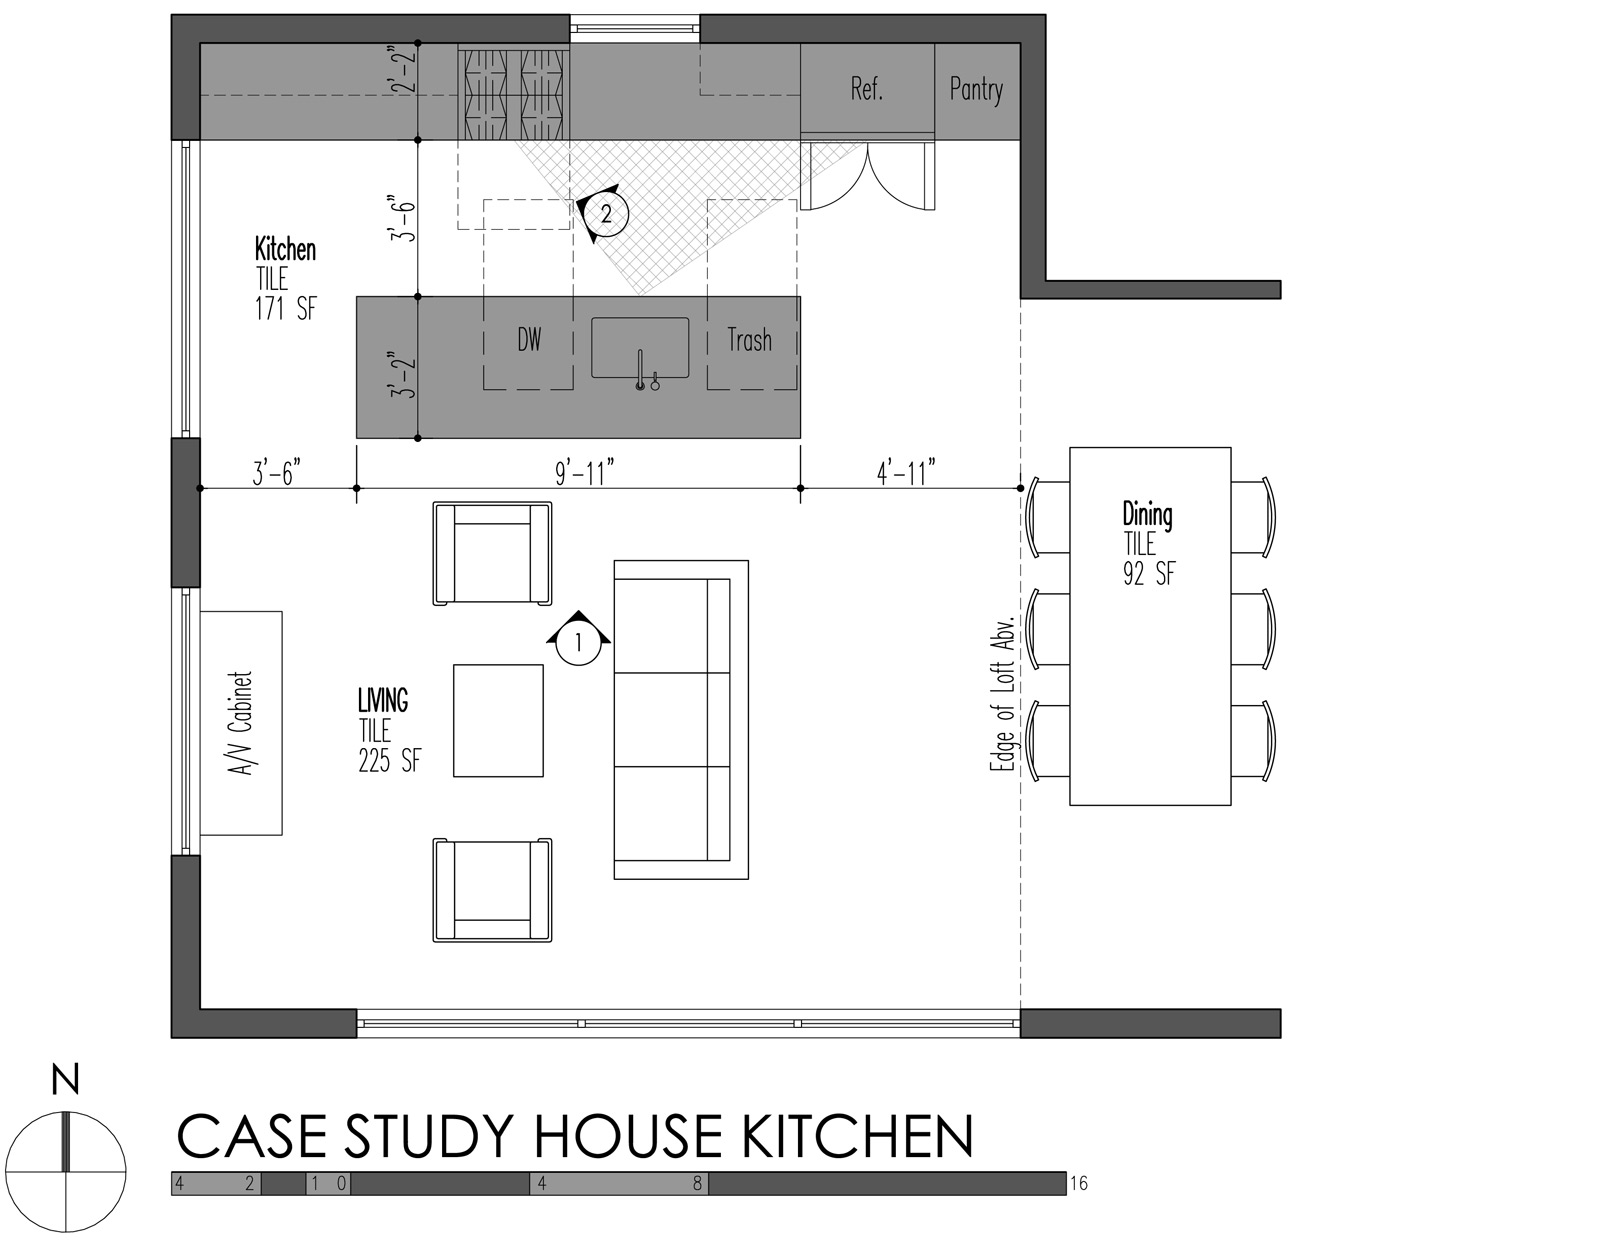 Island kitchen layout drawing - Build Llc Case Study House Plan